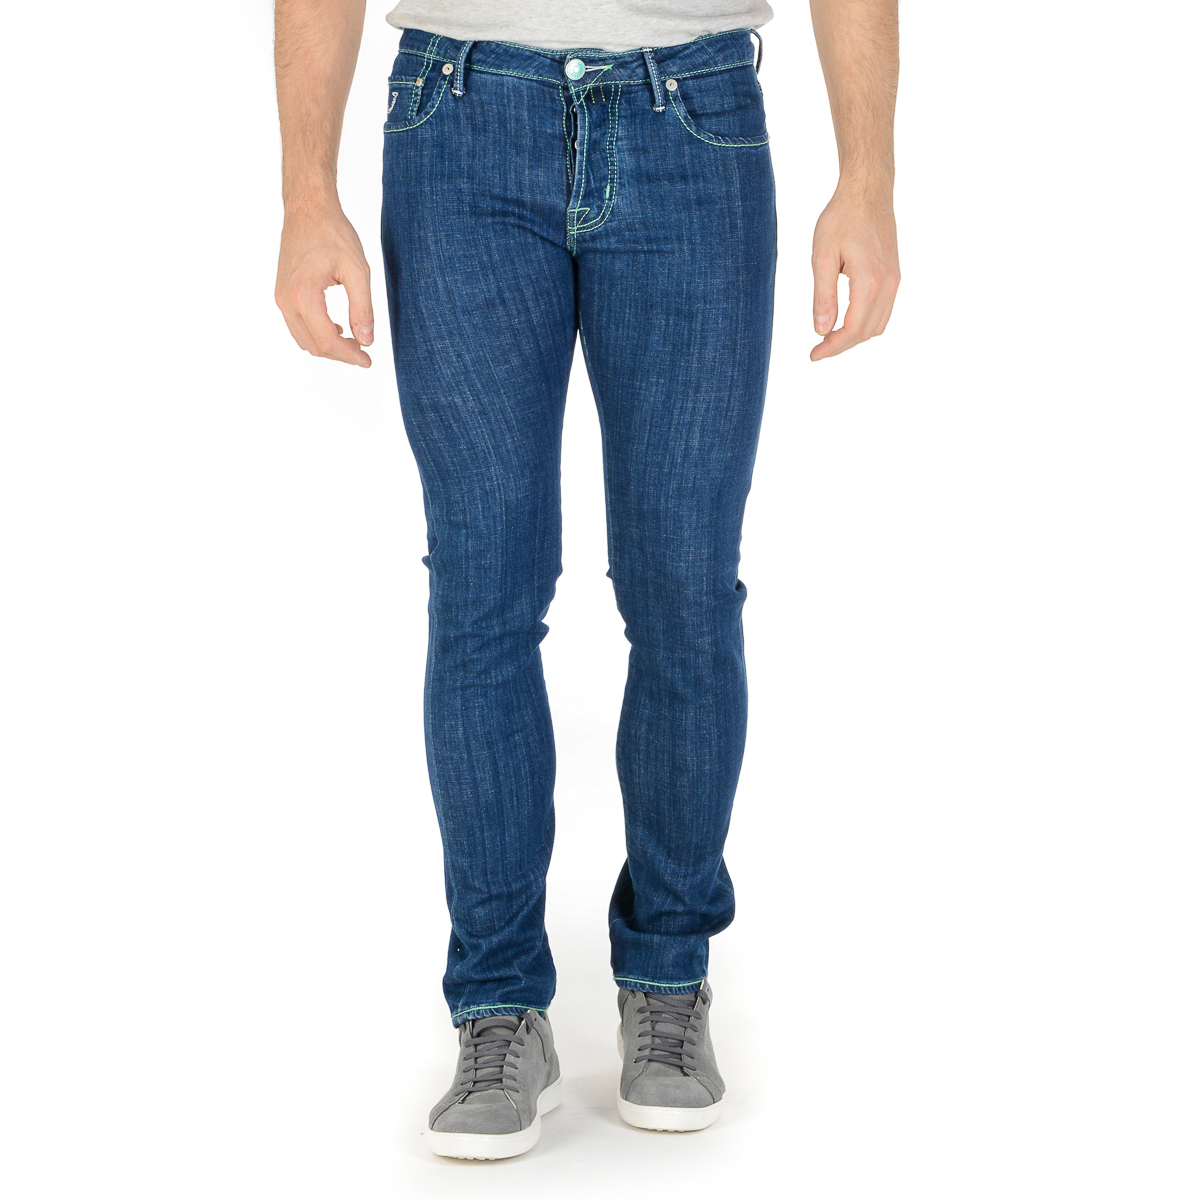 Primary image for Jacob Cohen Mens Jeans J688 Blue